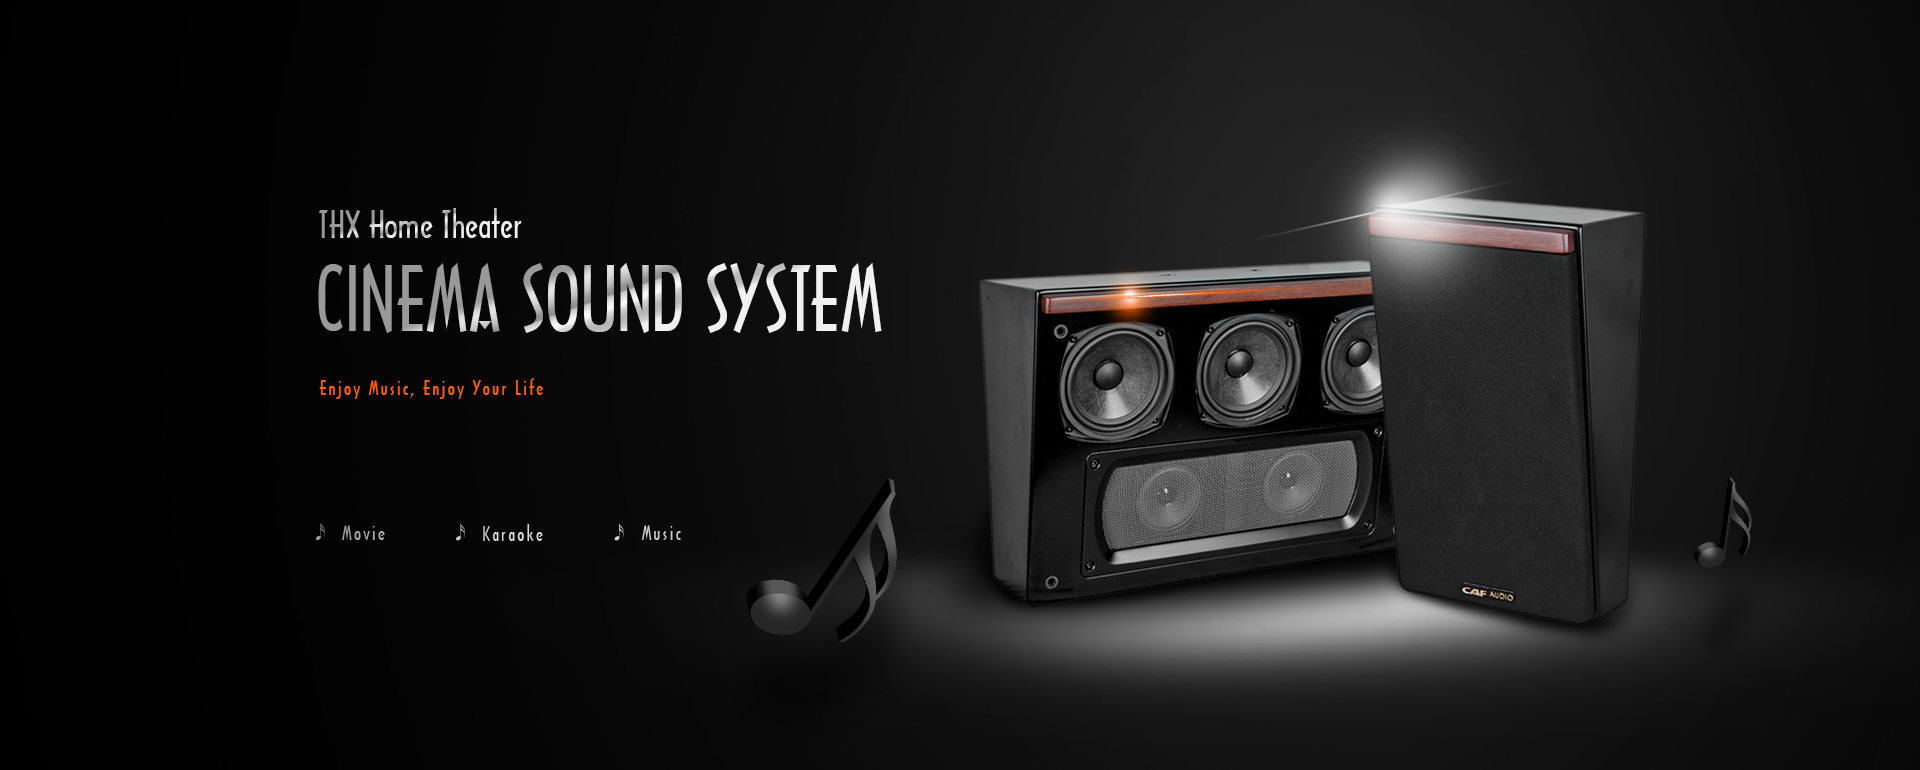 Cinema Sound System